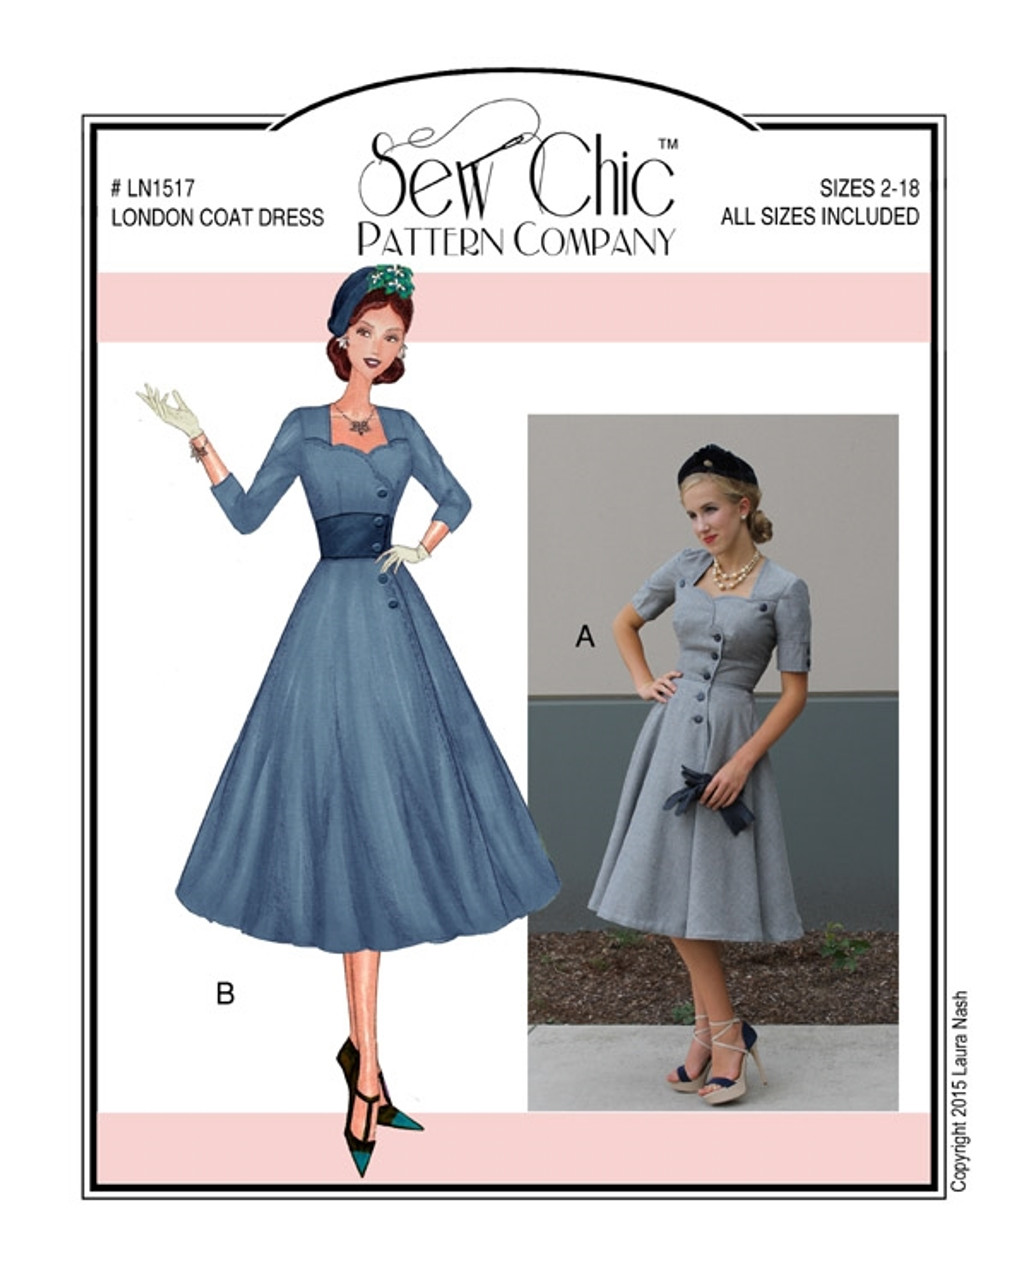 London Coat Dress - Sew Chic Pattern Company